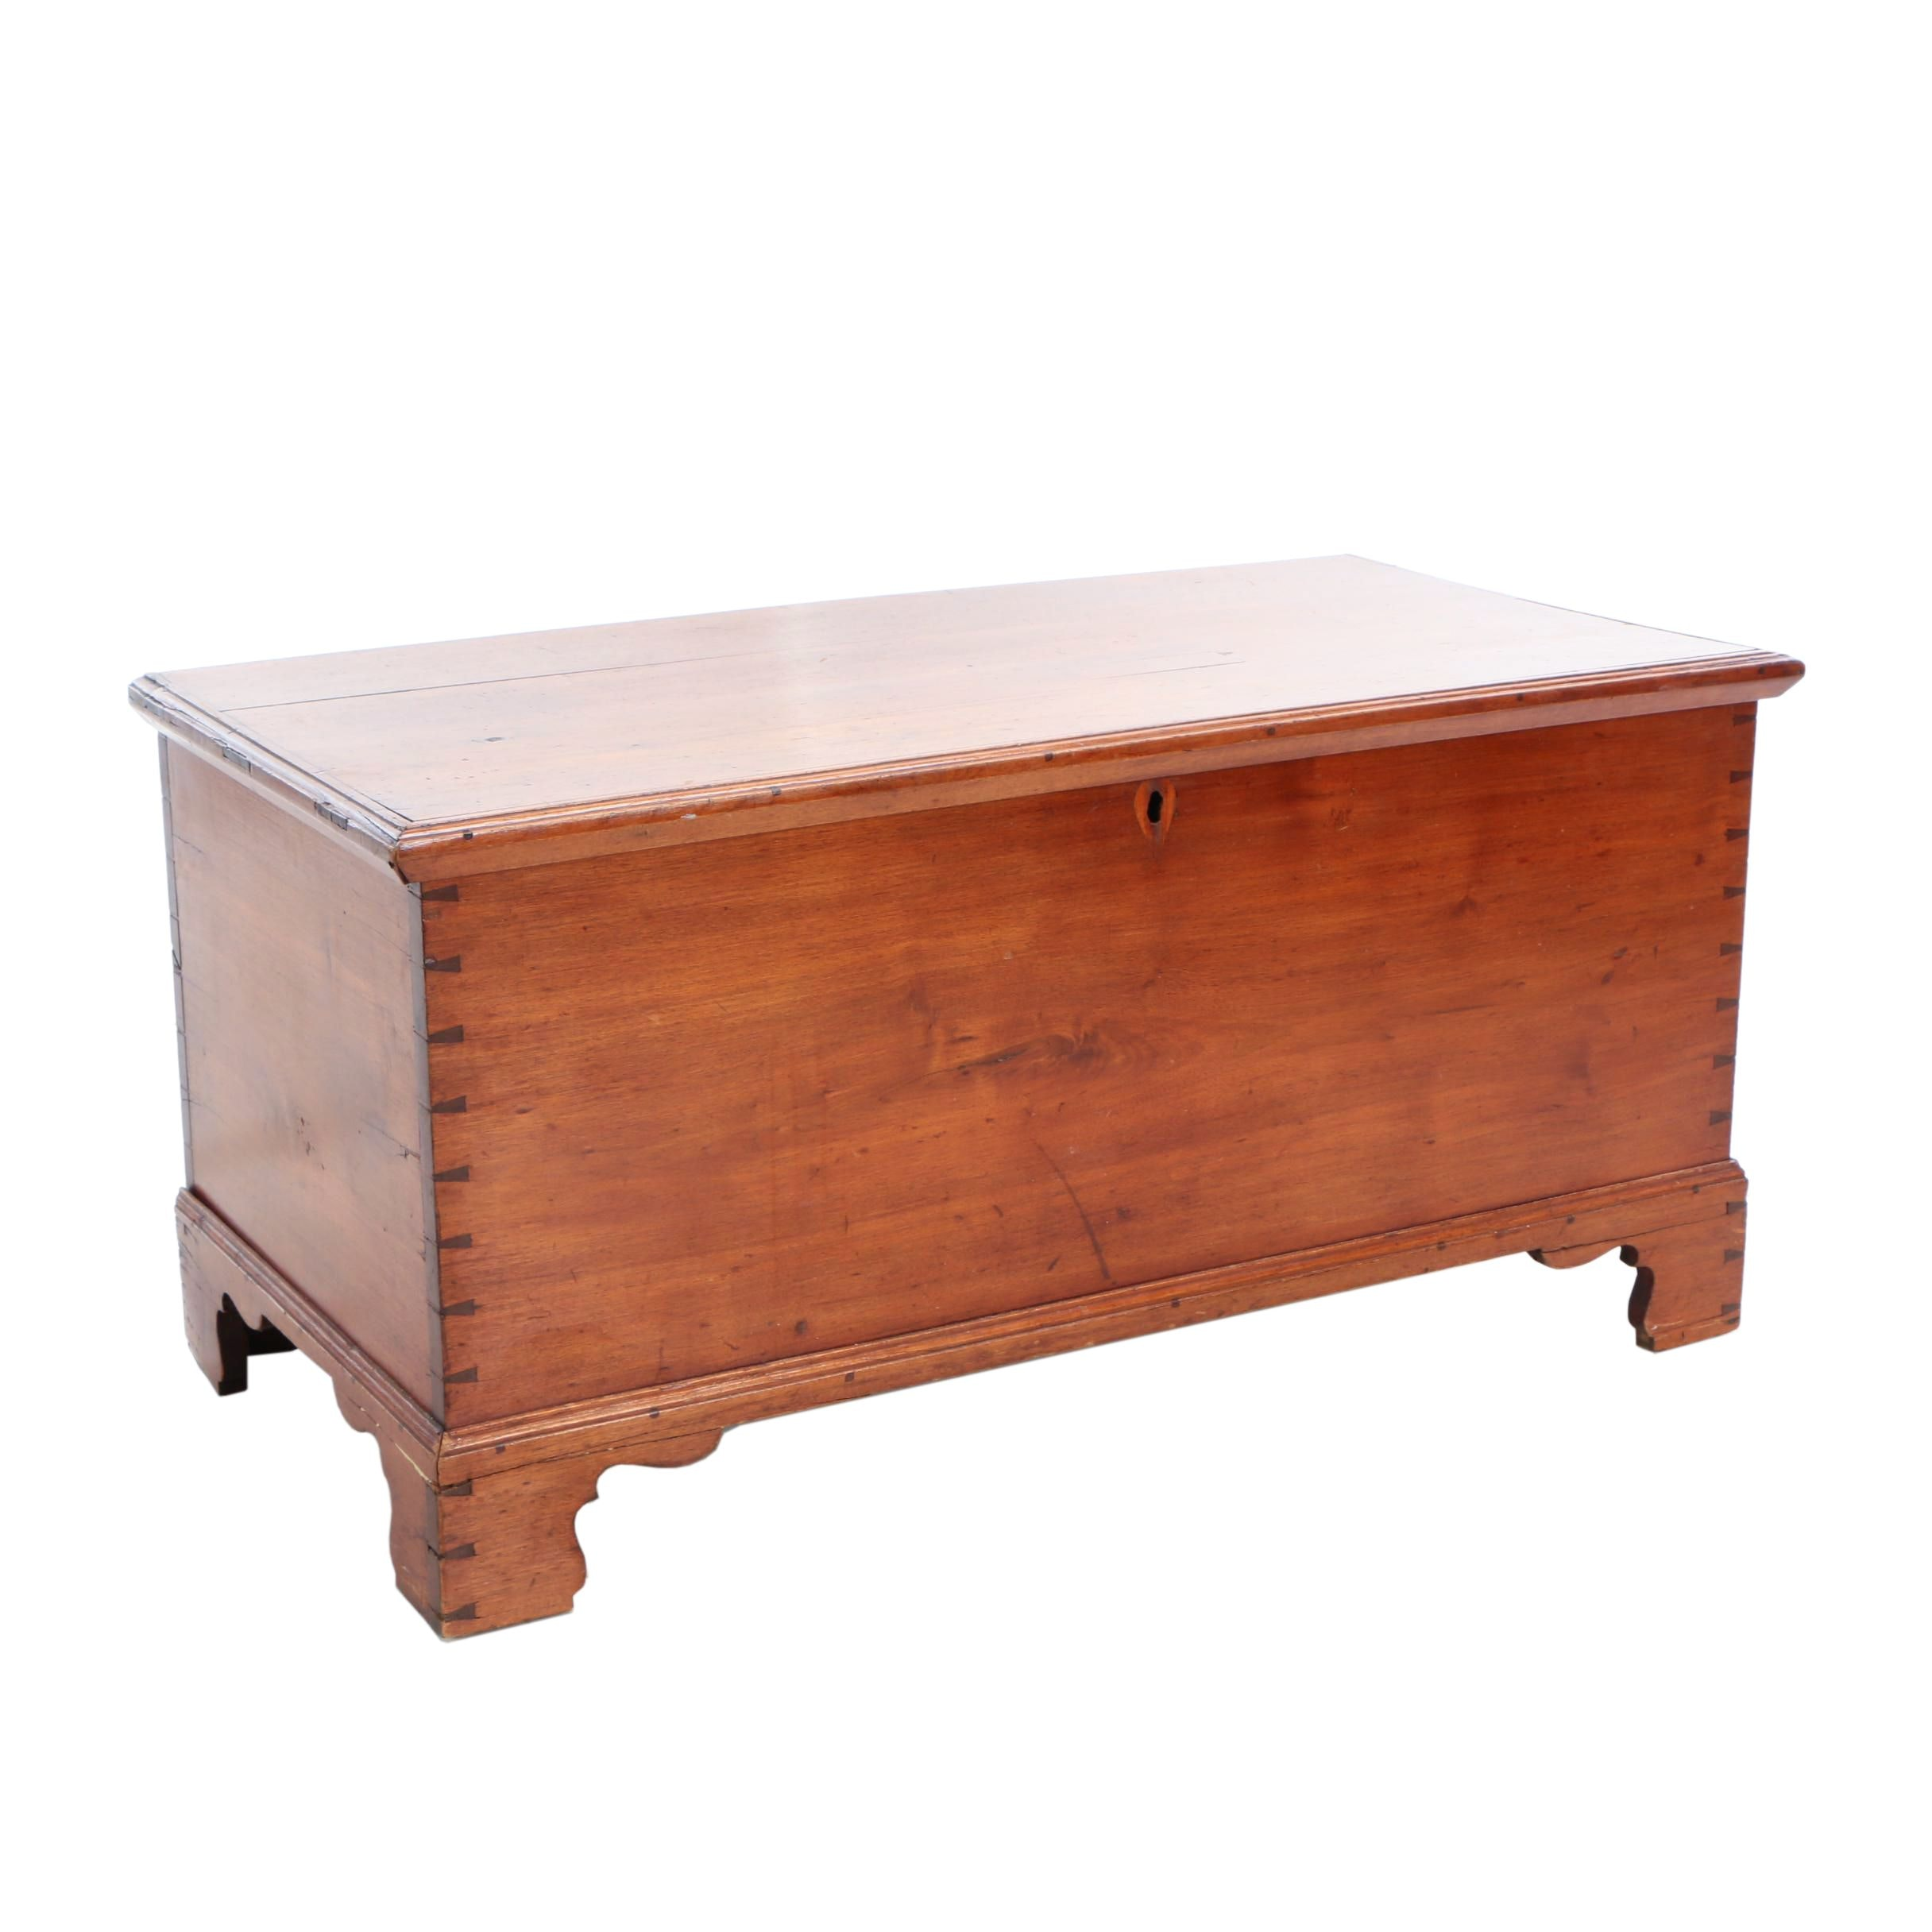 American Chippendale Walnut Blanket Chest, Late 18th Century